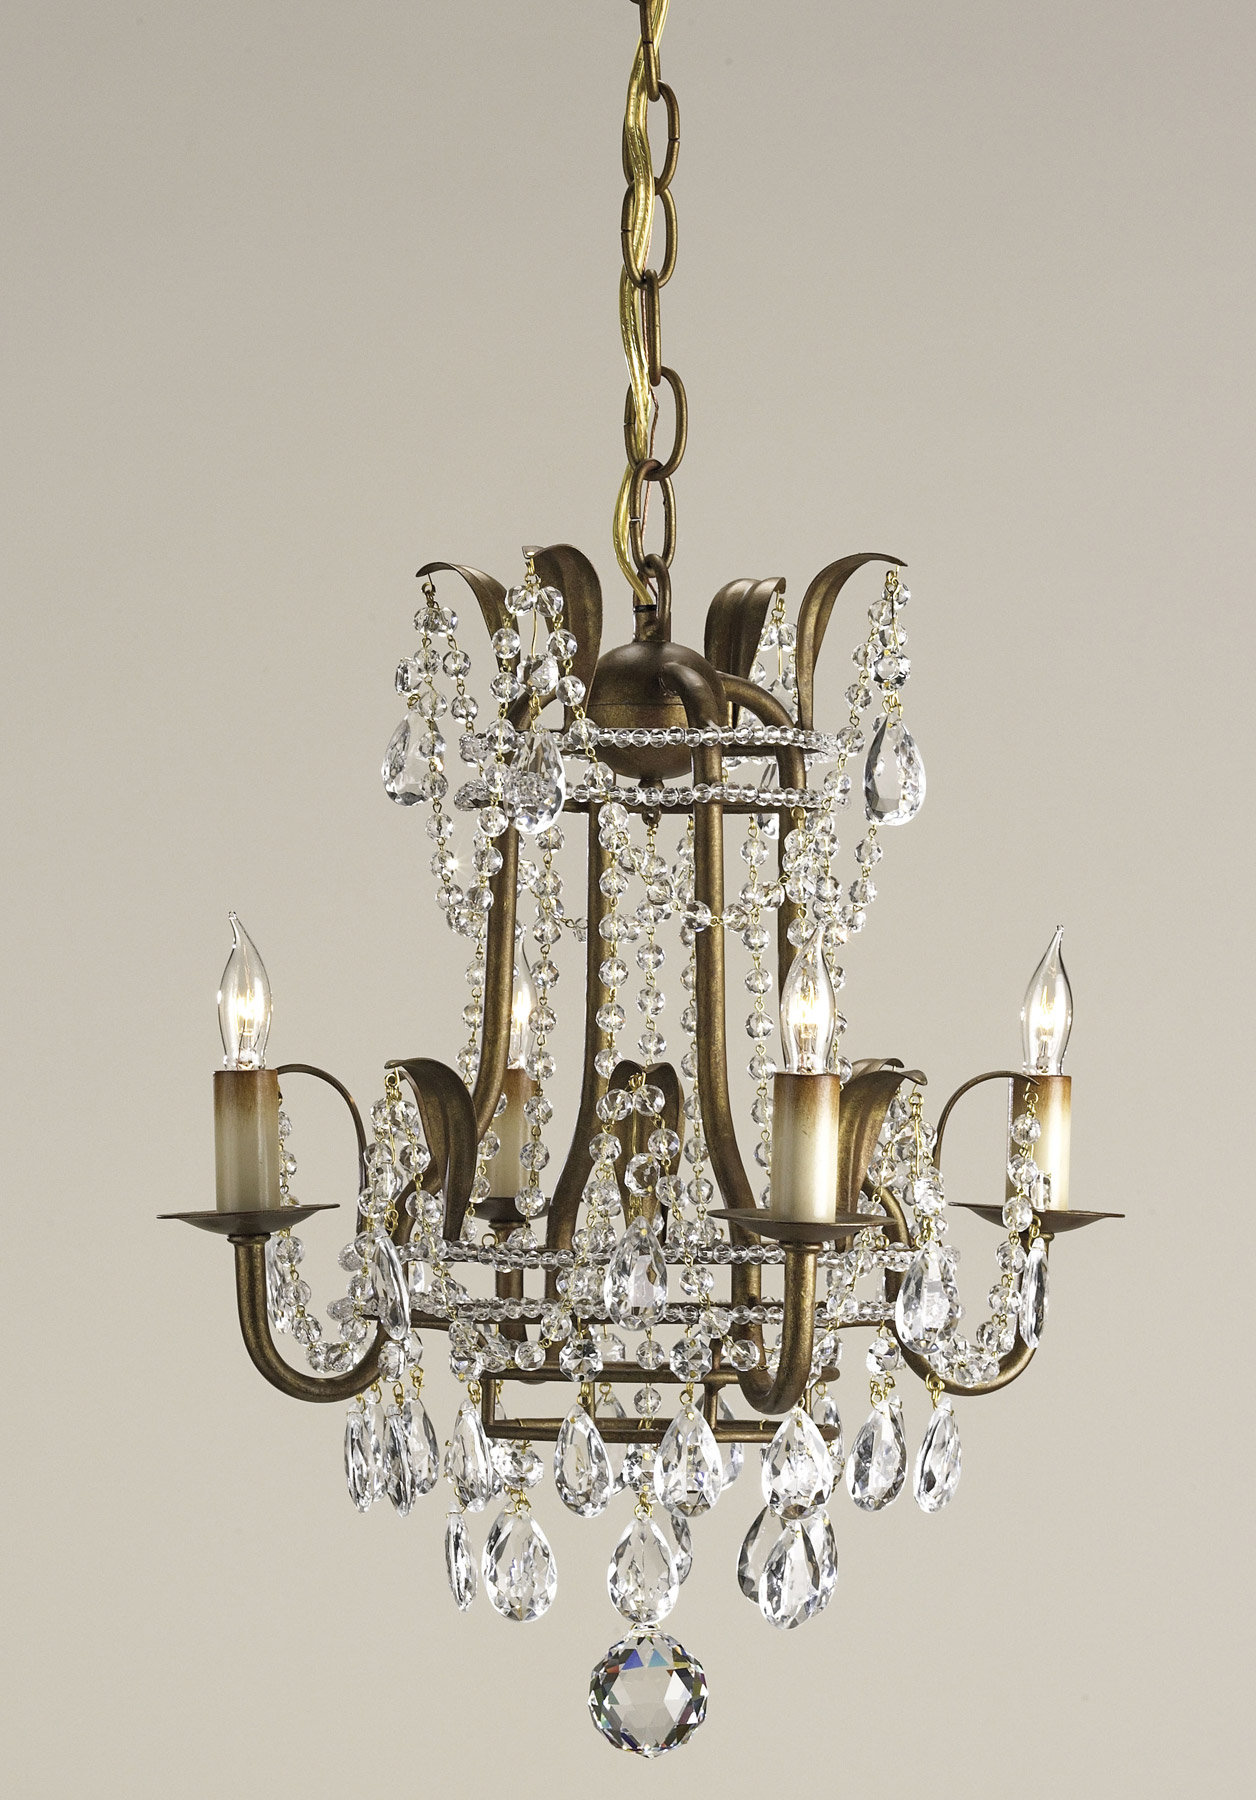 Currey and Company 9543 Crystal Laureate Four Light Mini Chandelier